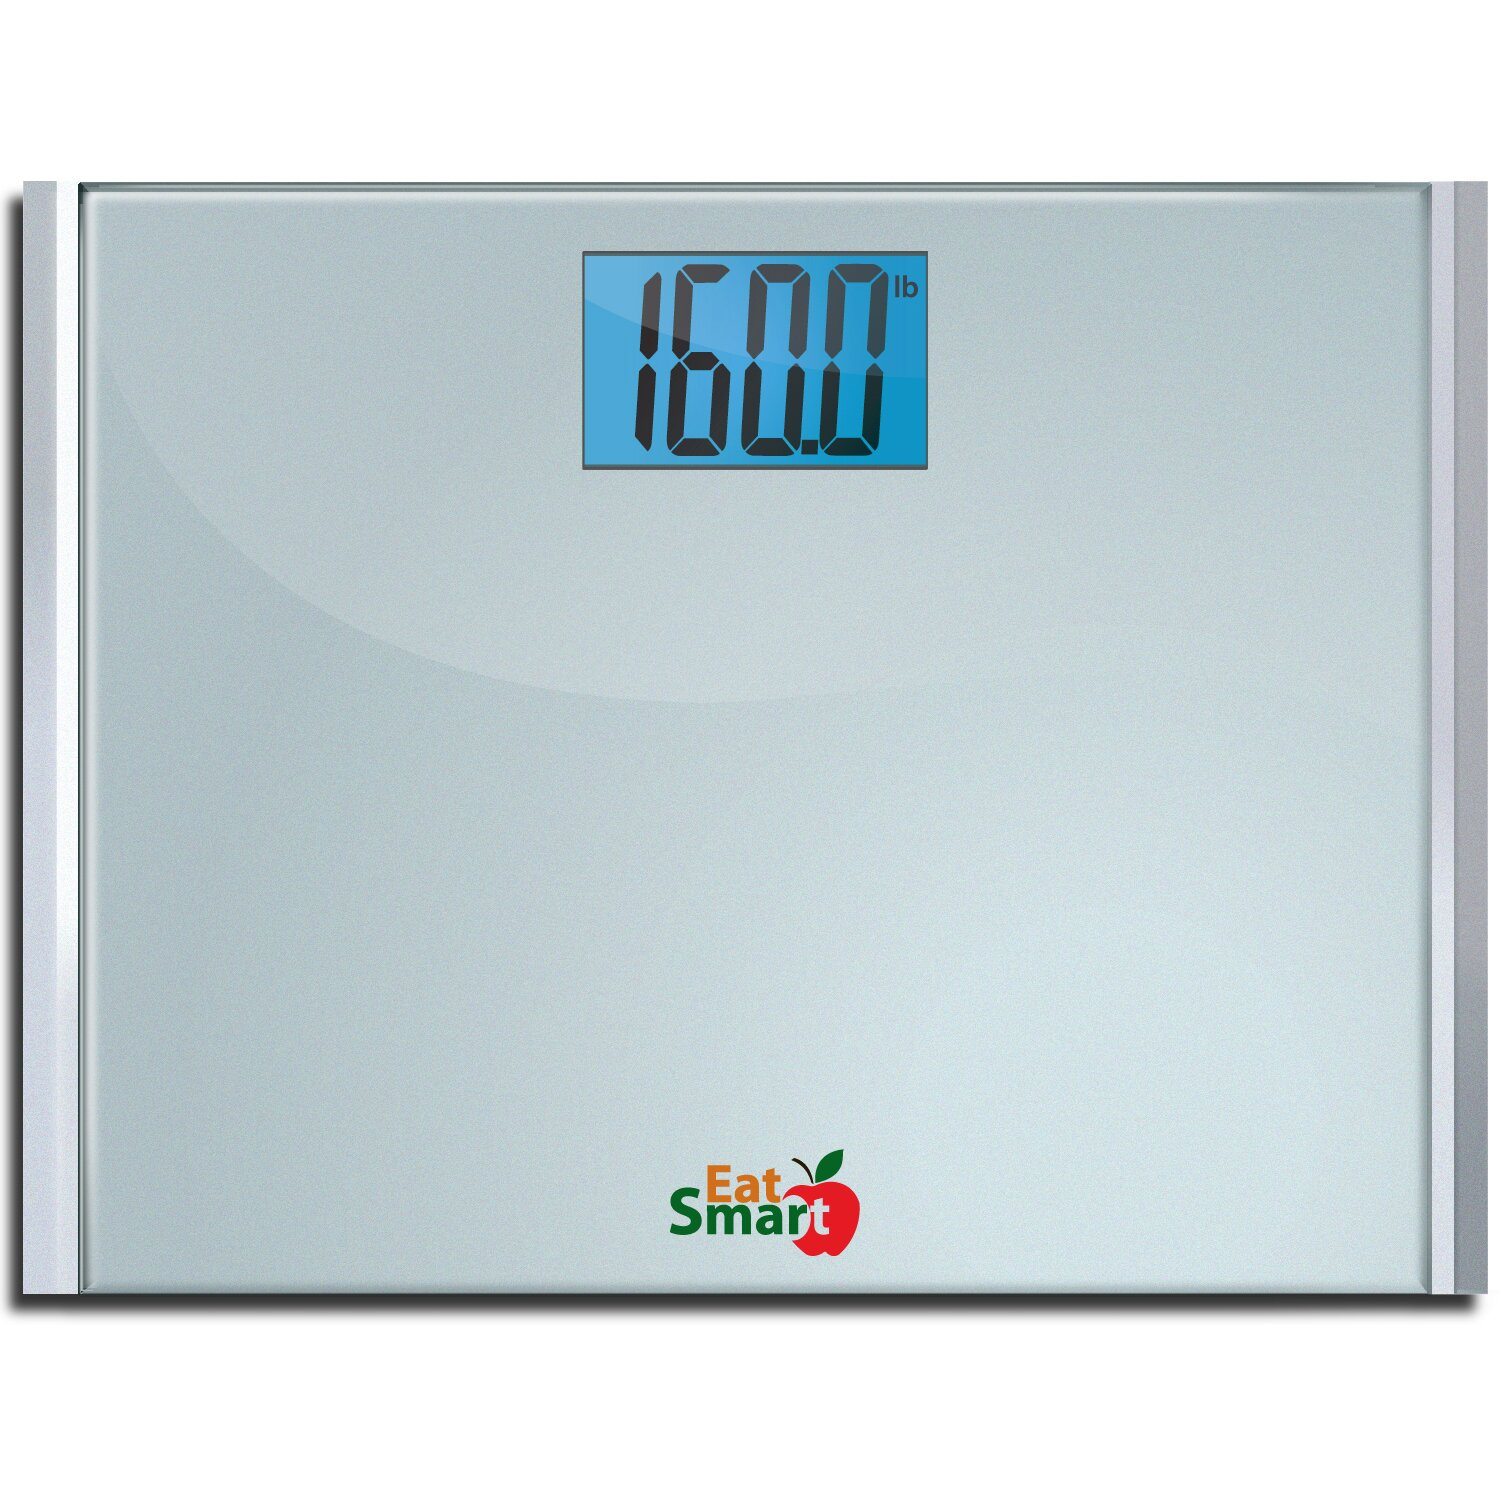 Calibrate digital bathroom scale - Precision Plus Bathroom Scale